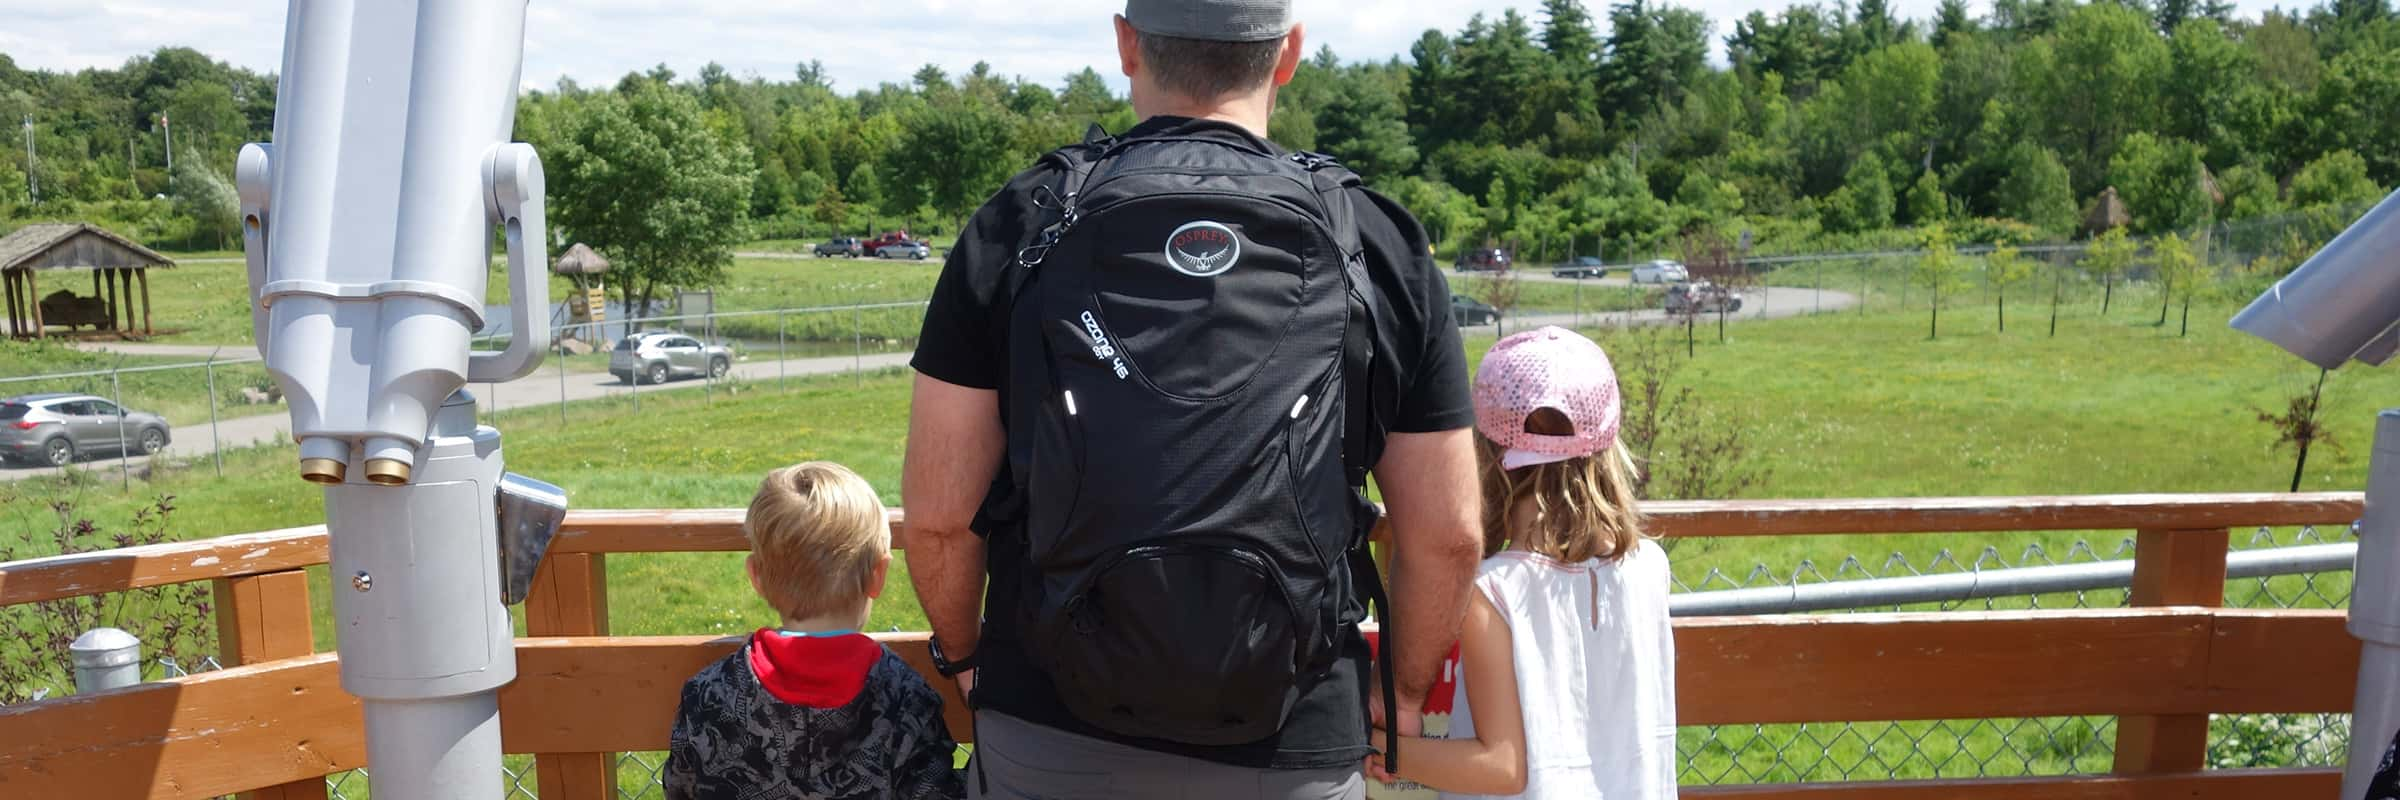 Osprey Ozone 46L Travel Backpack Reviewed